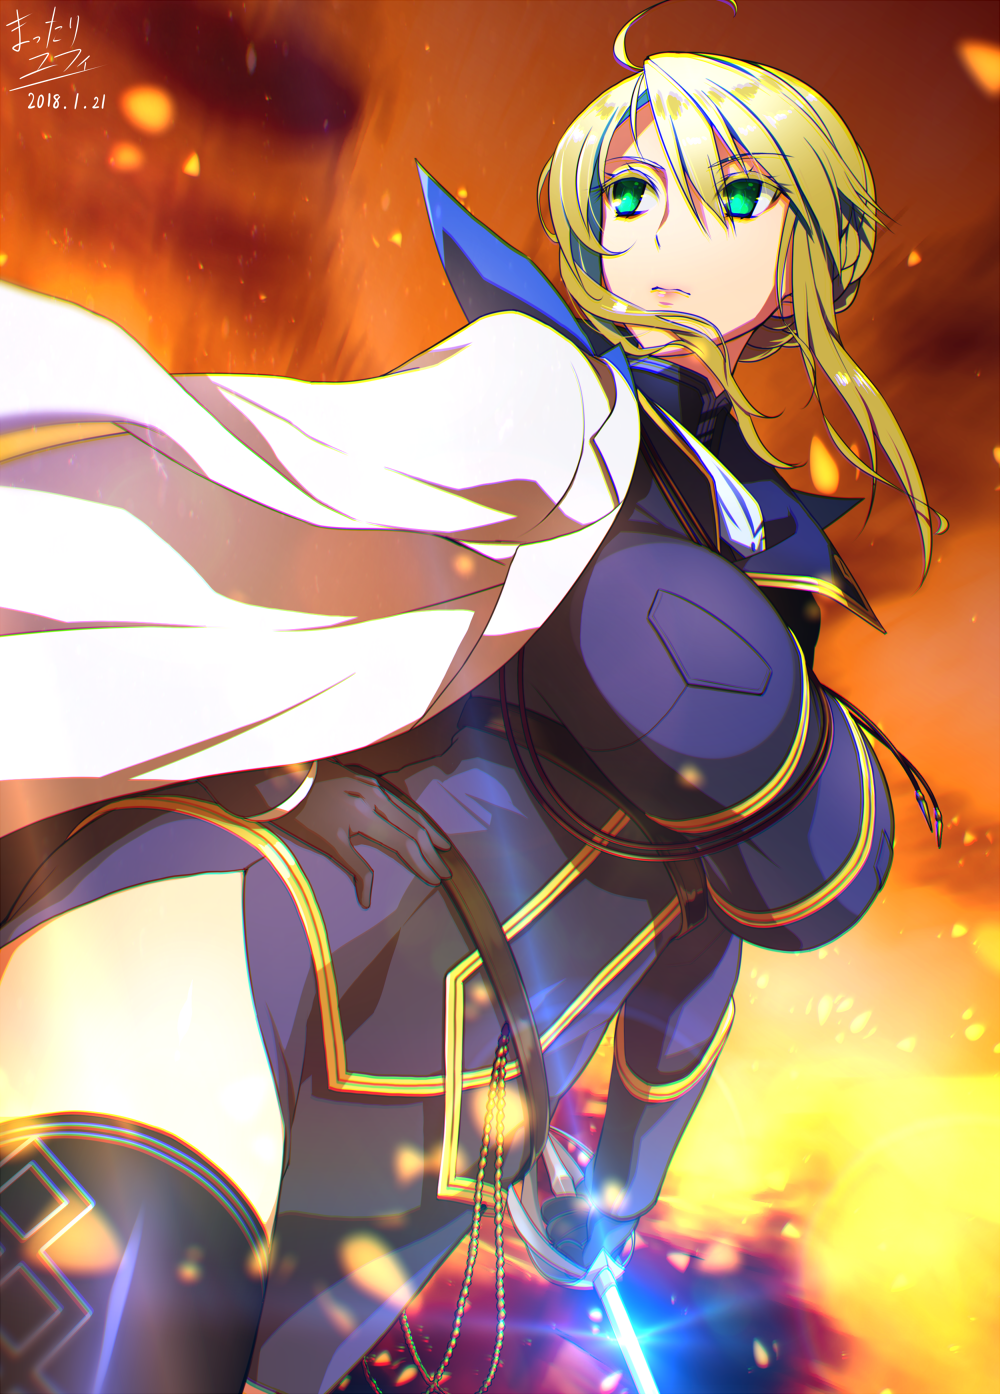 1girl 2018 ahoge artist_name artoria_pendragon_(all) artoria_pendragon_(lancer) belt black_gloves blonde_hair breasts cape commentary_request dated embers epee fate/grand_order fate_(series) gloves green_eyes hair_between_eyes highres holding holding_sword holding_weapon large_breasts mattari_yufi sidelocks solo sword thigh-highs tight_top upper_body weapon zettai_ryouiki